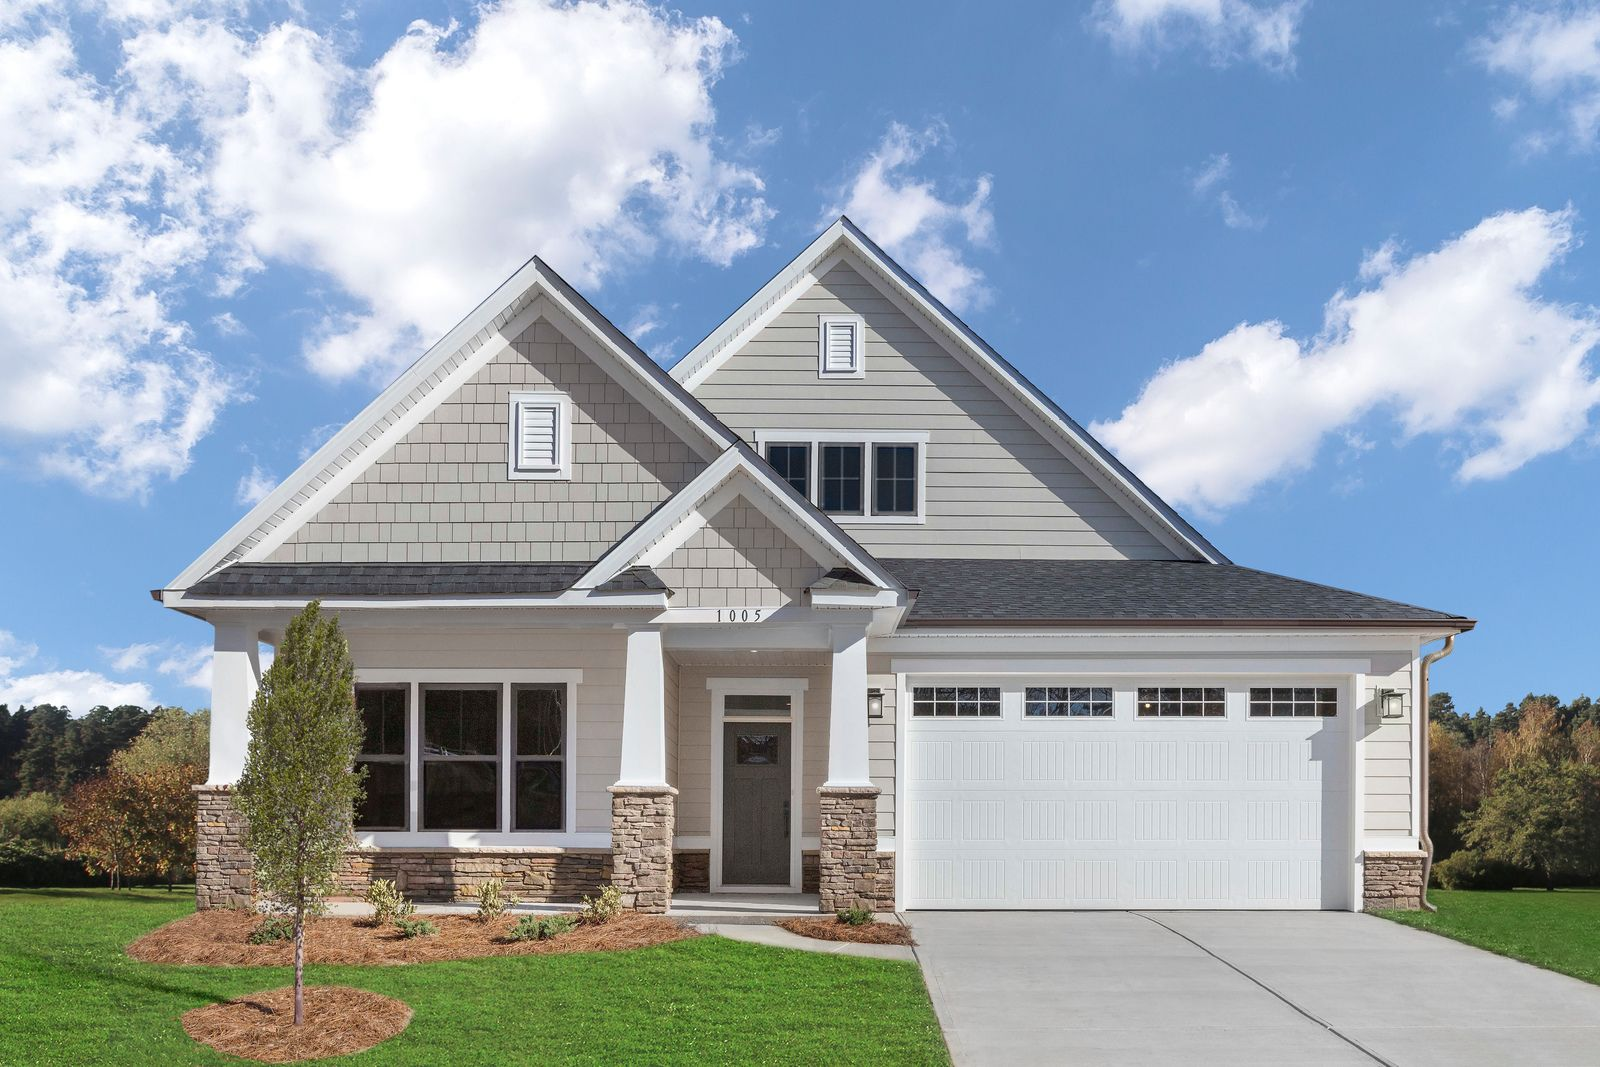 A Harrisburg Community Exclusively for Those 55 & Up:Schedule a visitto this community designed for ages 55+ offers amenities, maintenance-free lawn care, and main level living